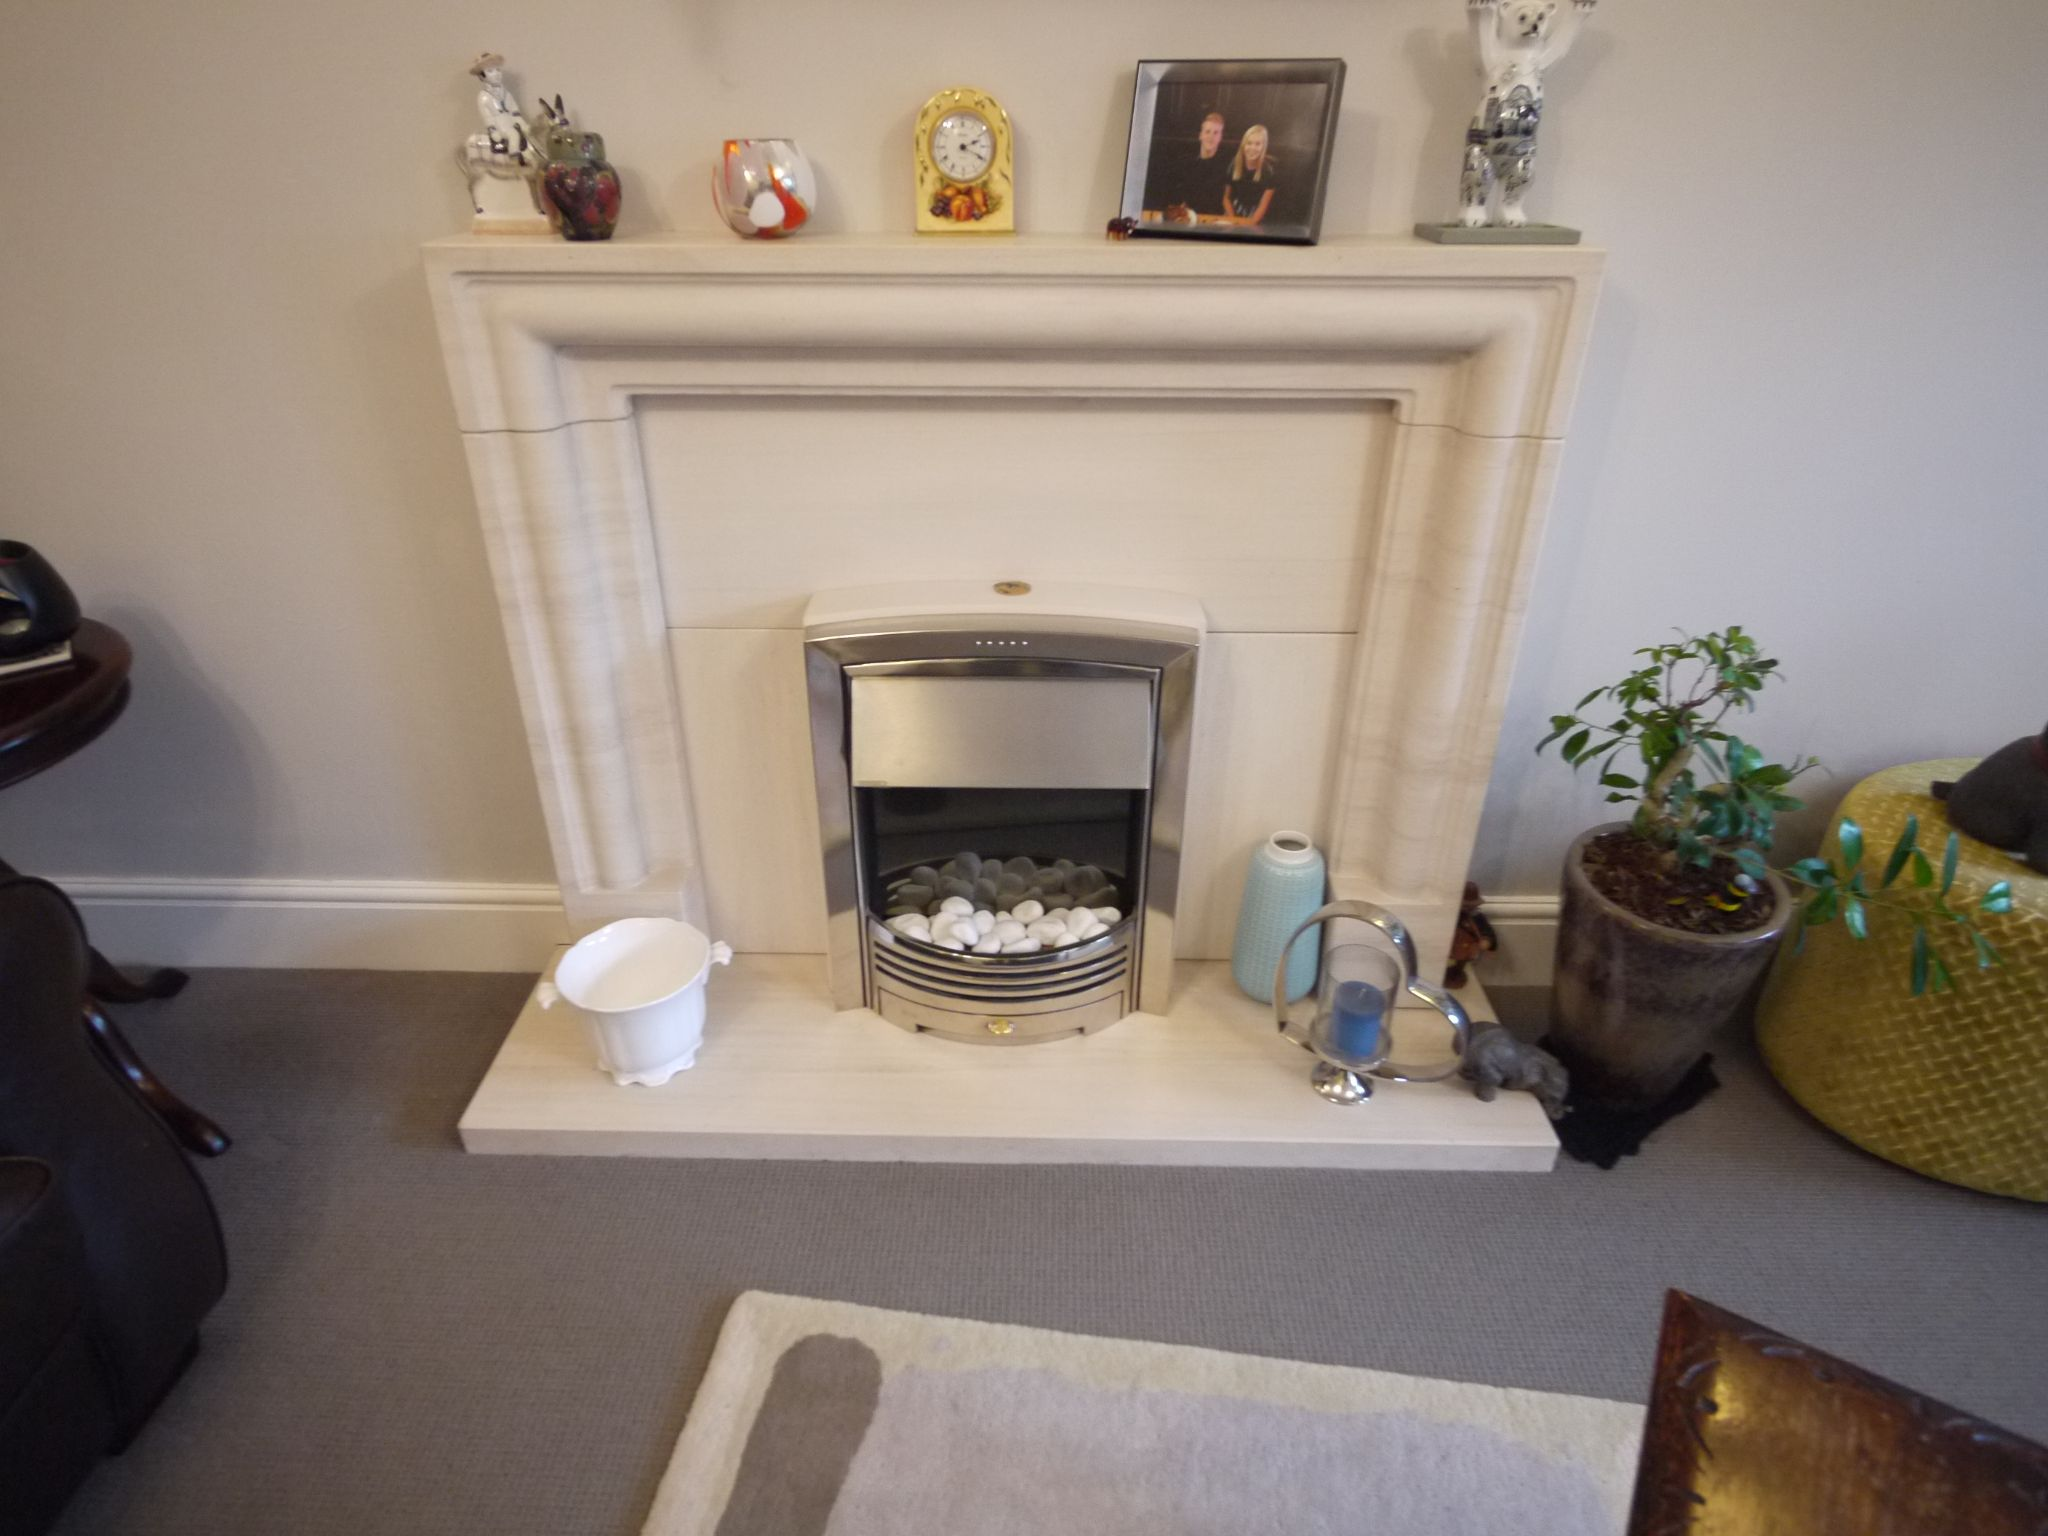 6 bedroom detached house SSTC in Halifax - Lounge fireplace.